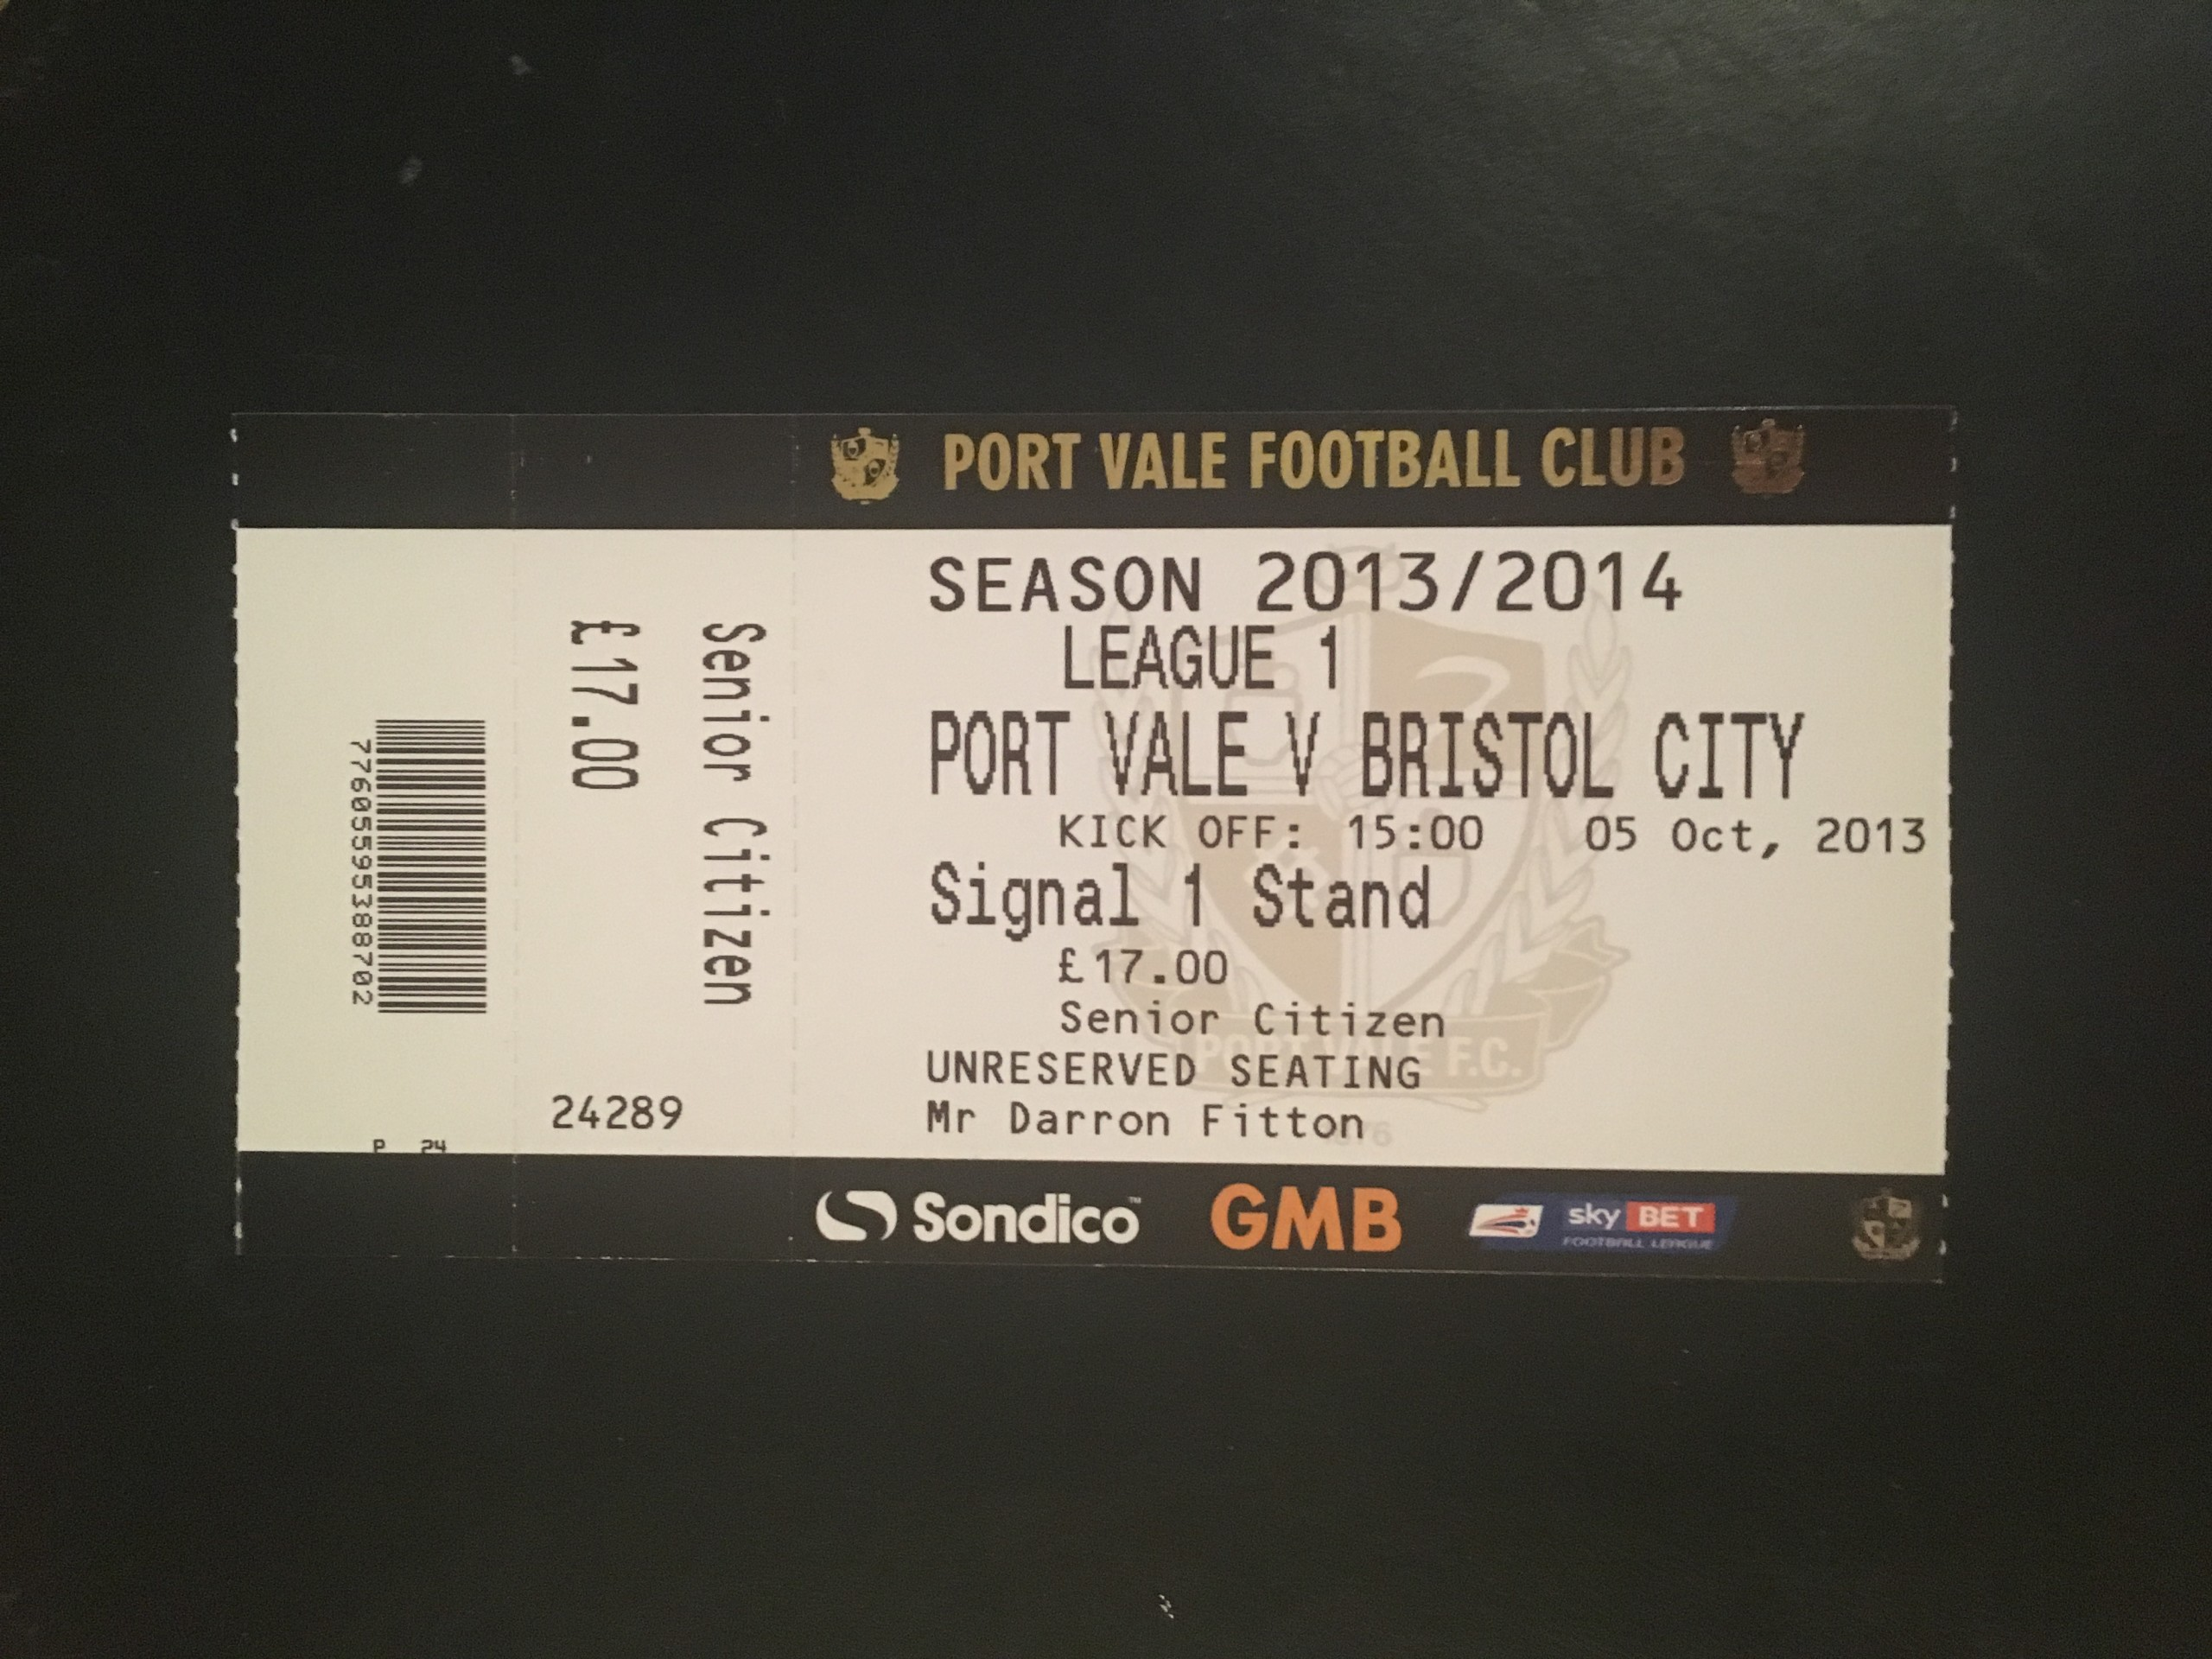 Port Vale v Bristol City 05-10-2013 Ticket